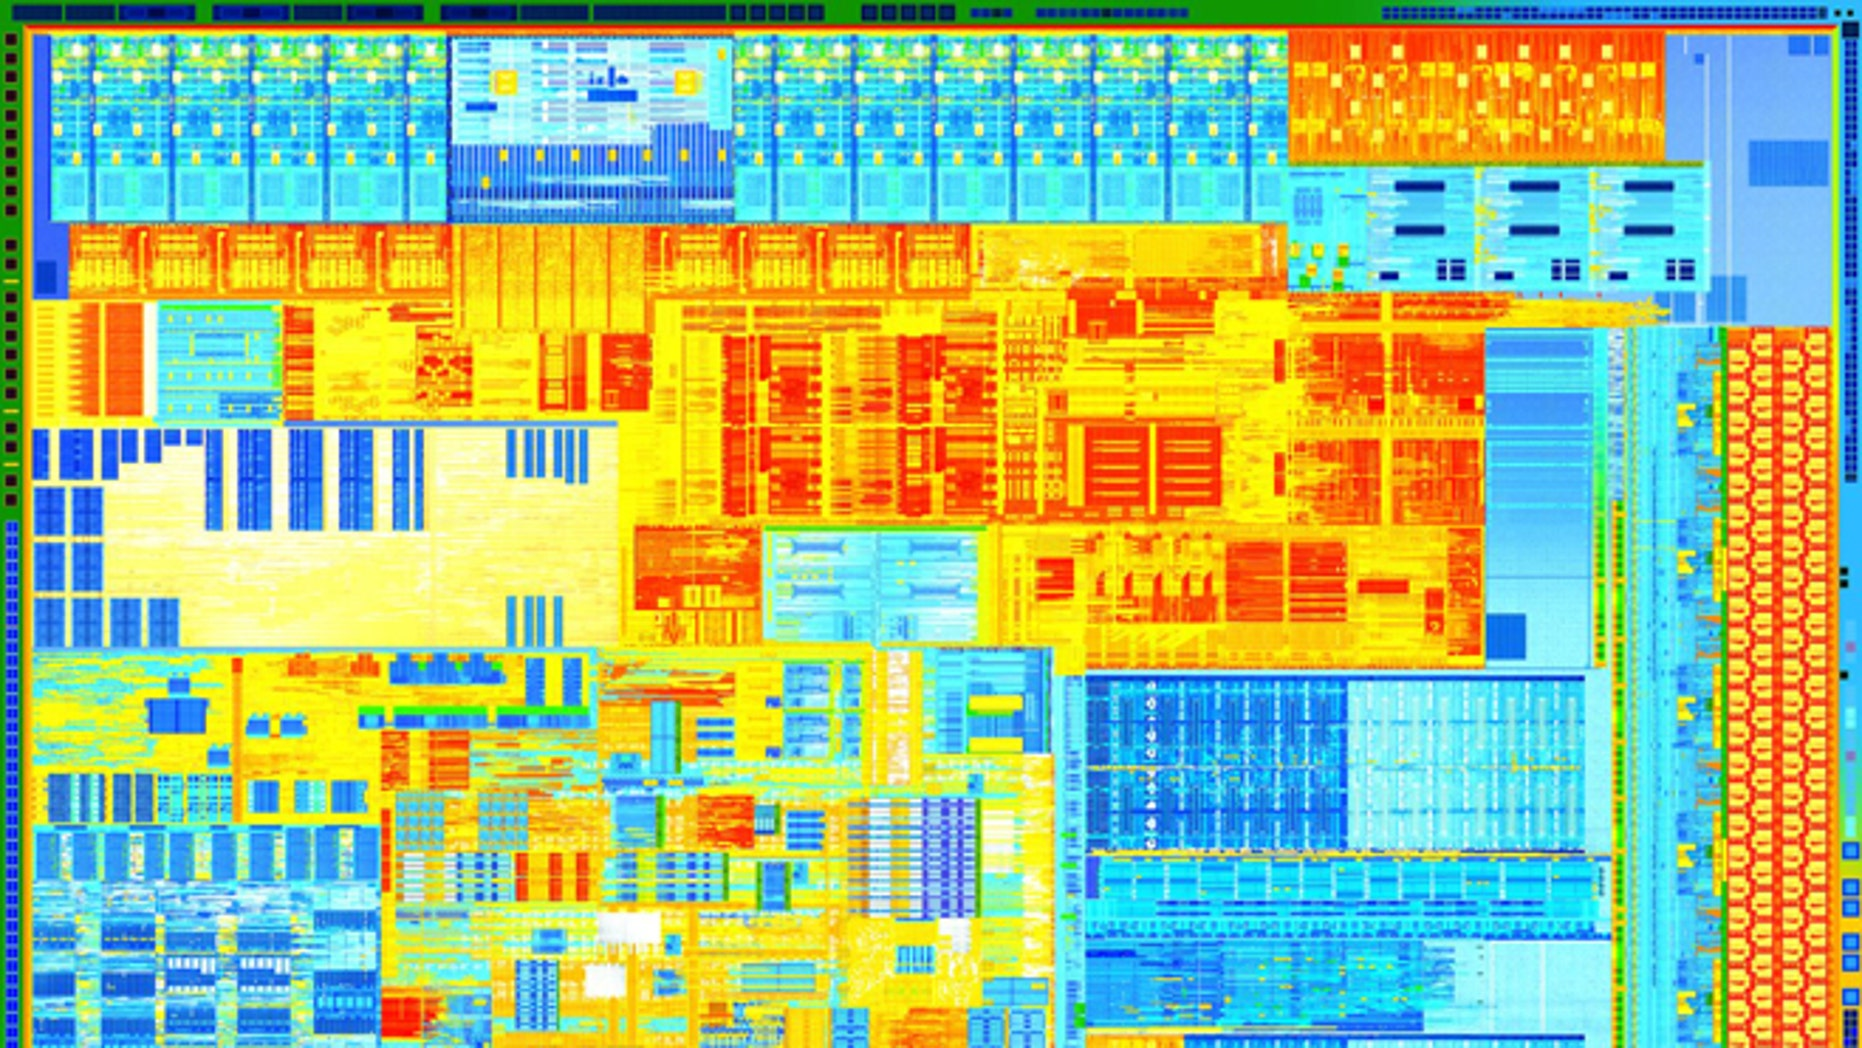 A portion of the latest Intel Core CPU, built off a new 22-nanometer manufacturing process that the company says will fuel Moore's Law for years to come.